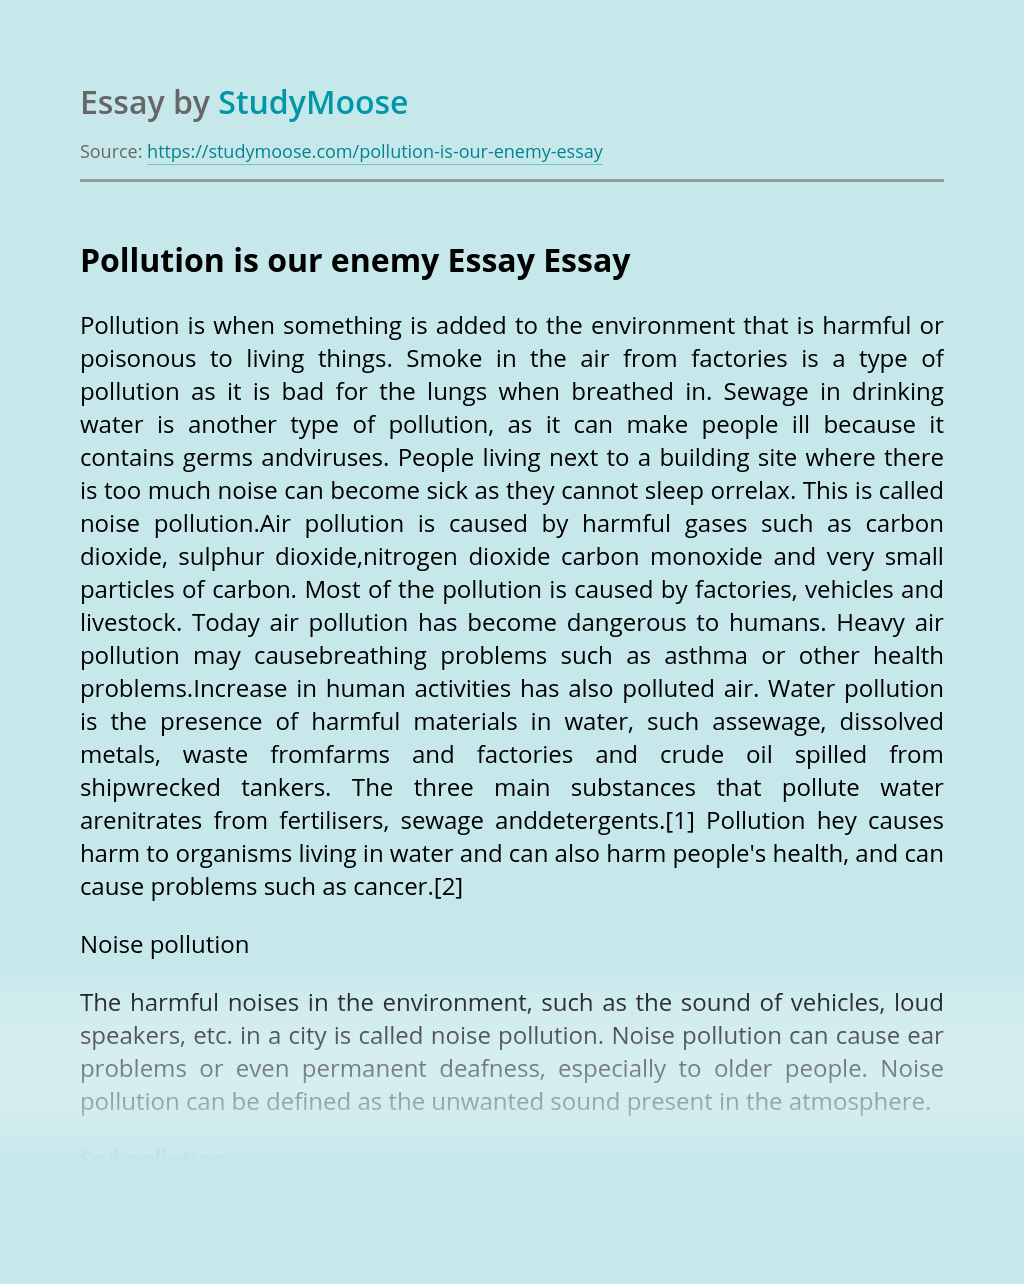 Pollution is our enemy Essay